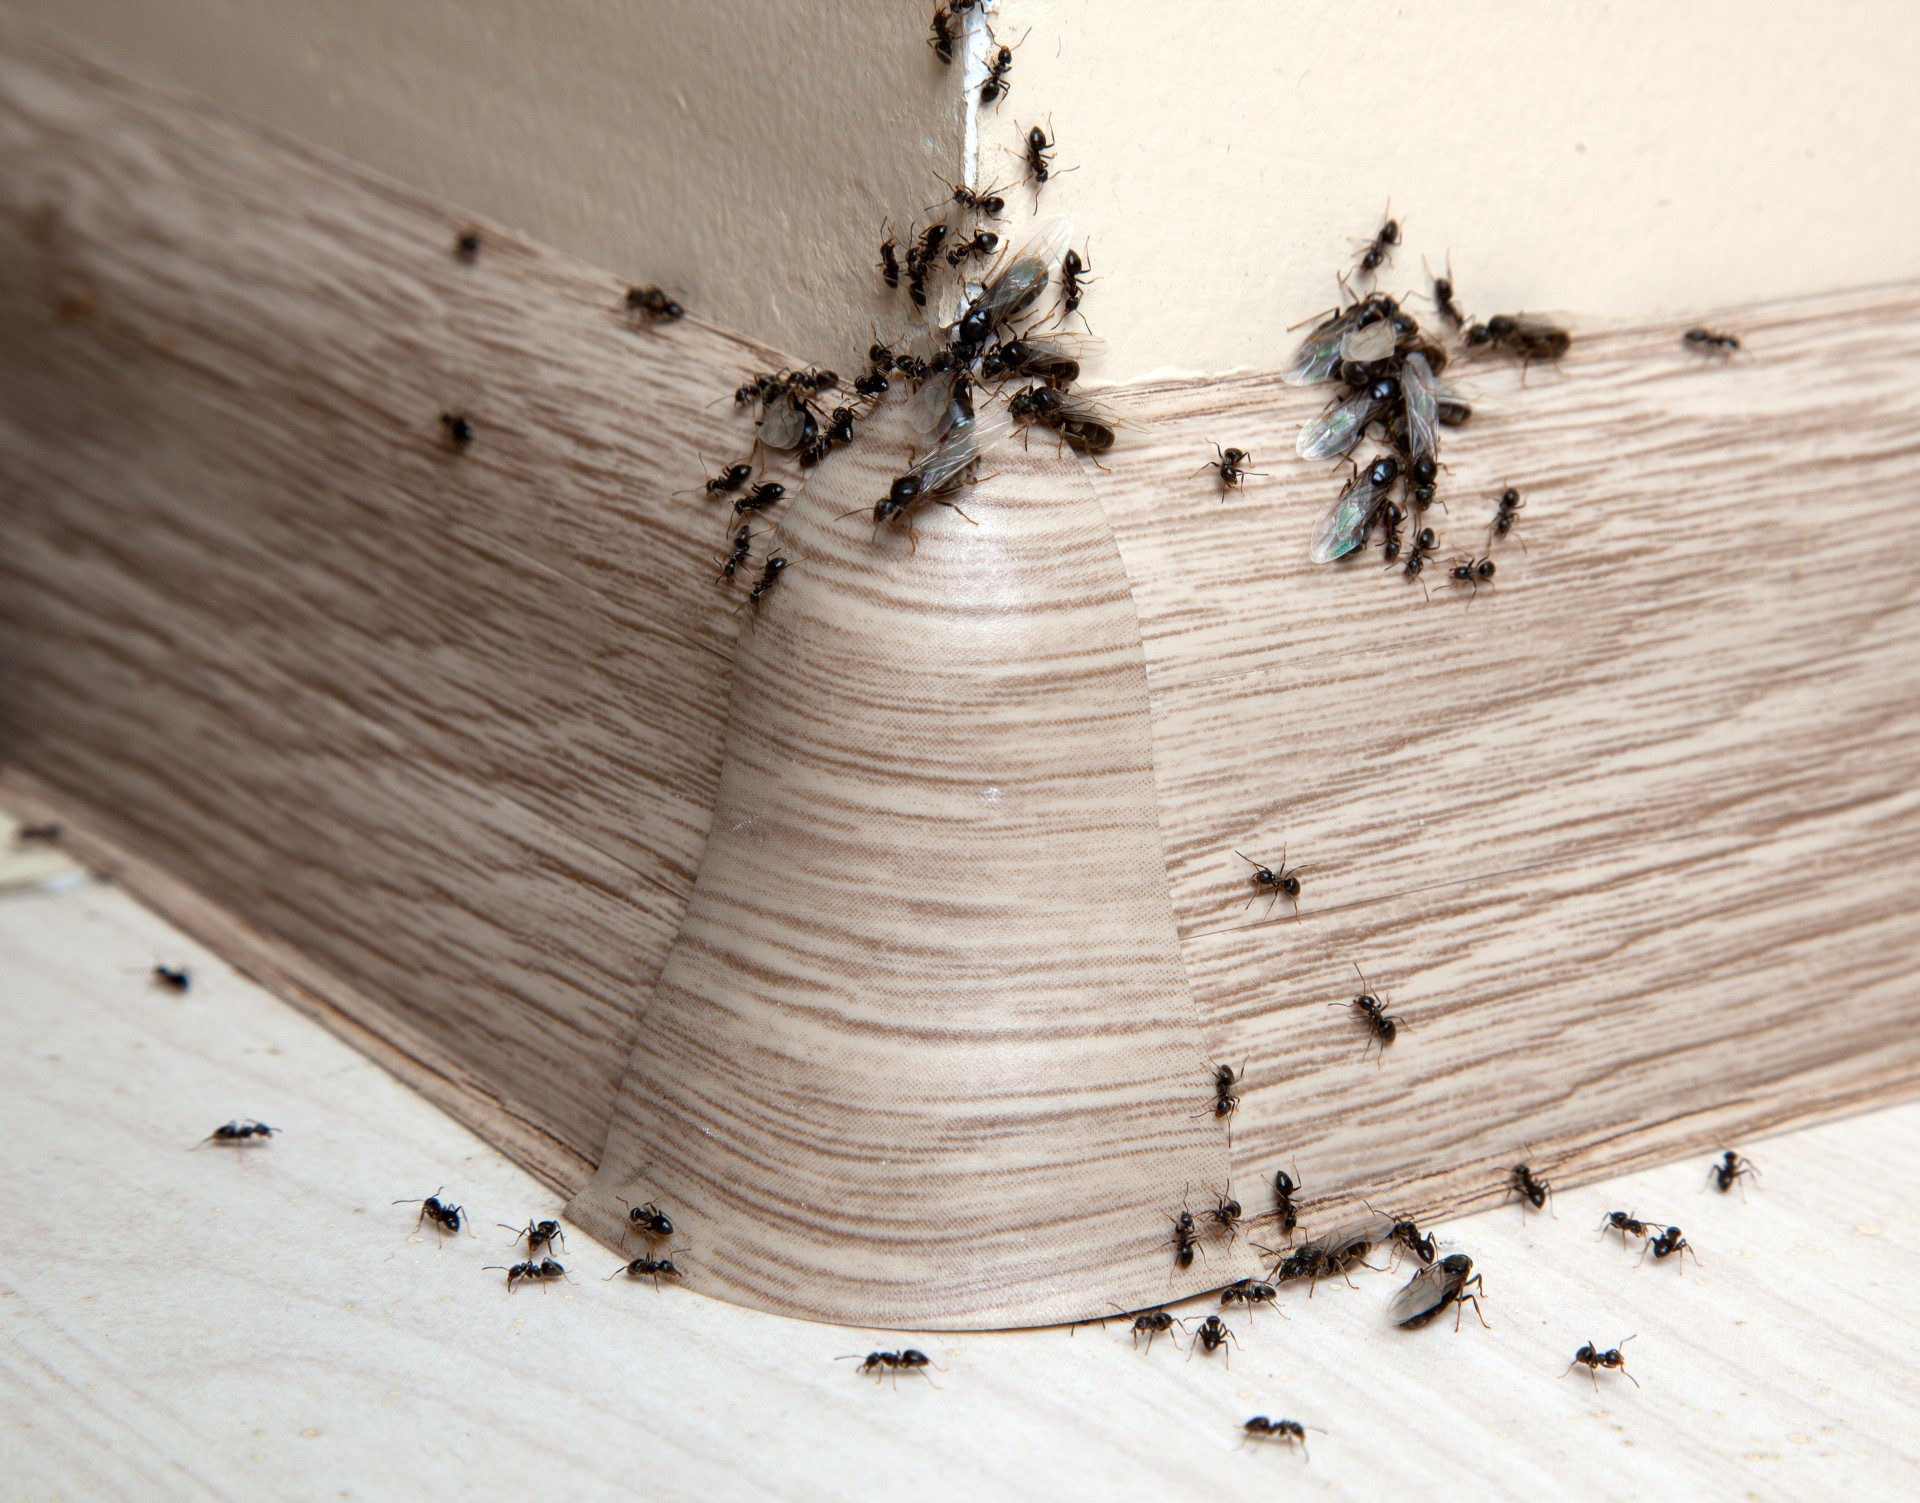 Ant Infestation, Pest Control in Highbury, N5. Call Now 020 8166 9746